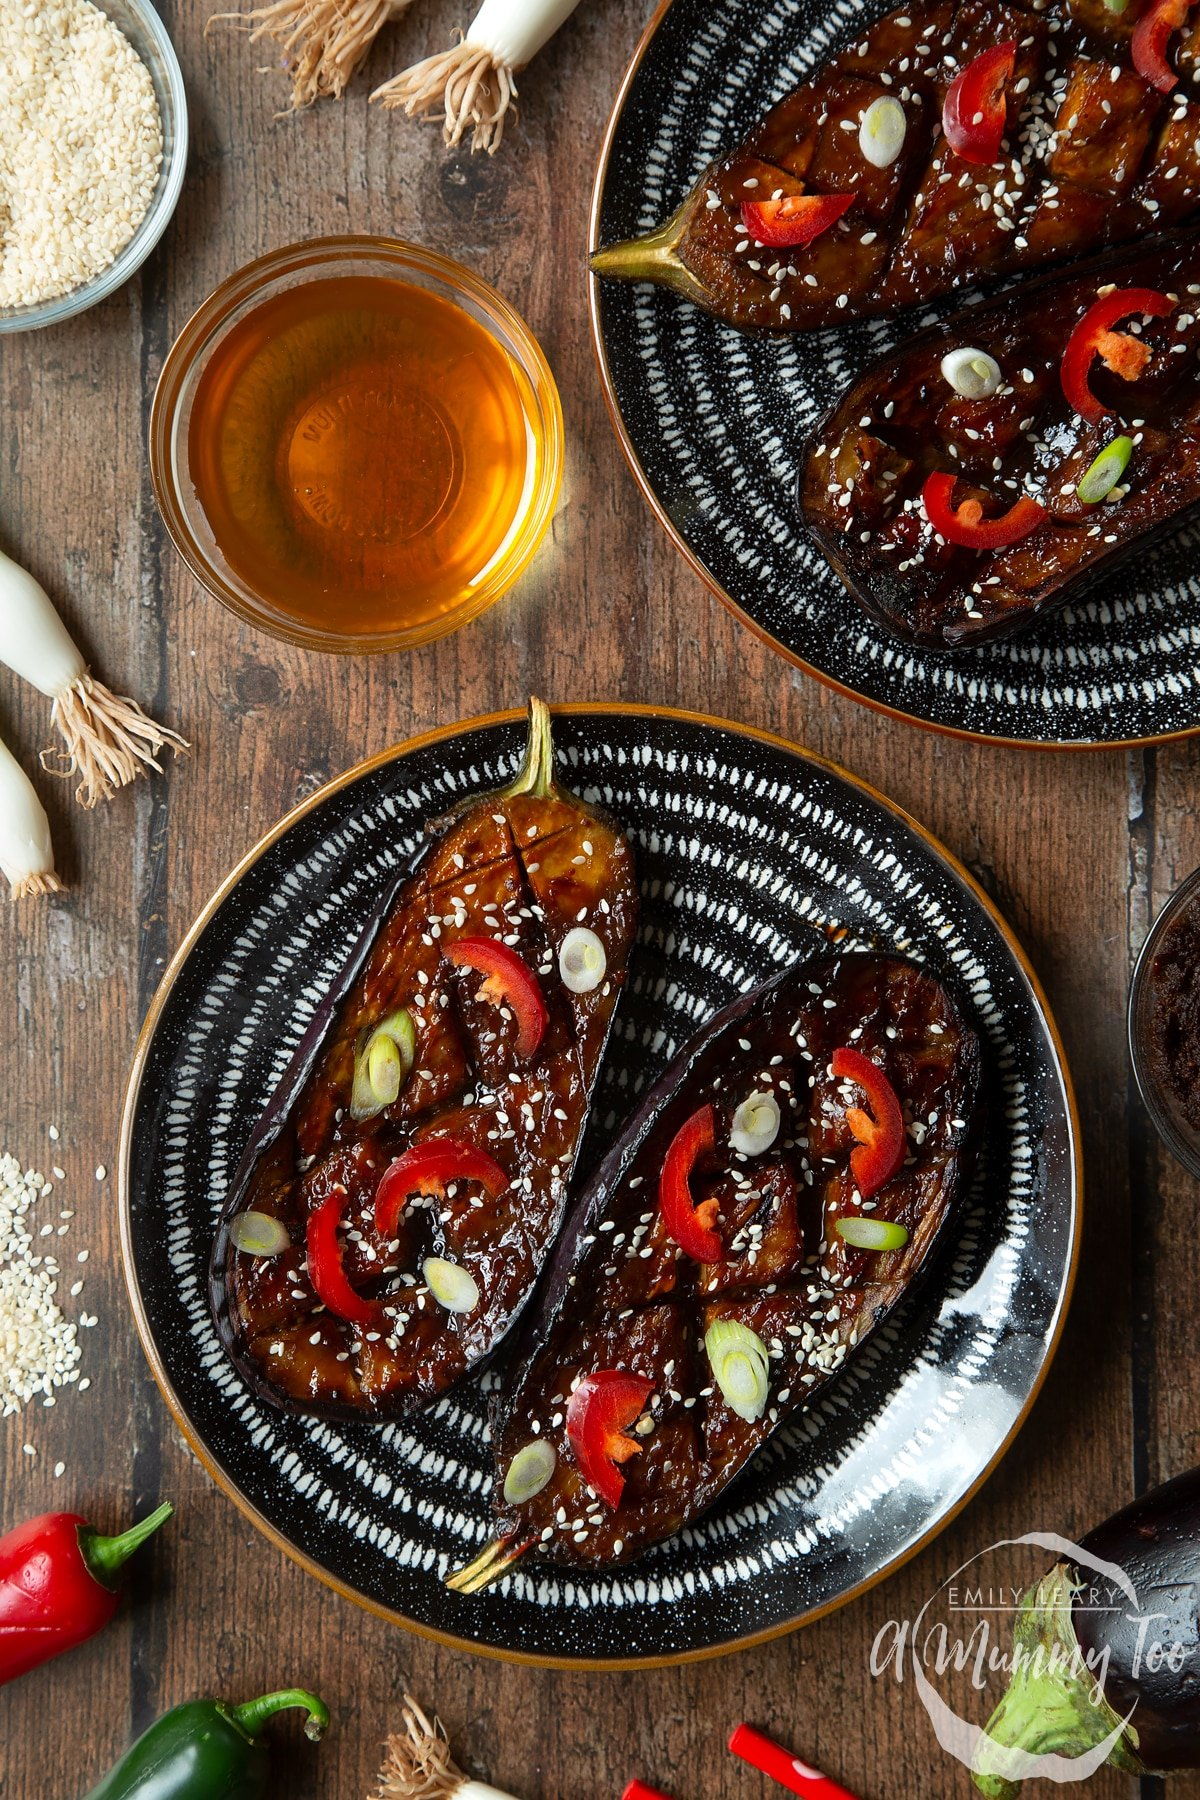 Two slices of miso aubergine on a plate, topped with chilli, spring onions and sesame seeds.